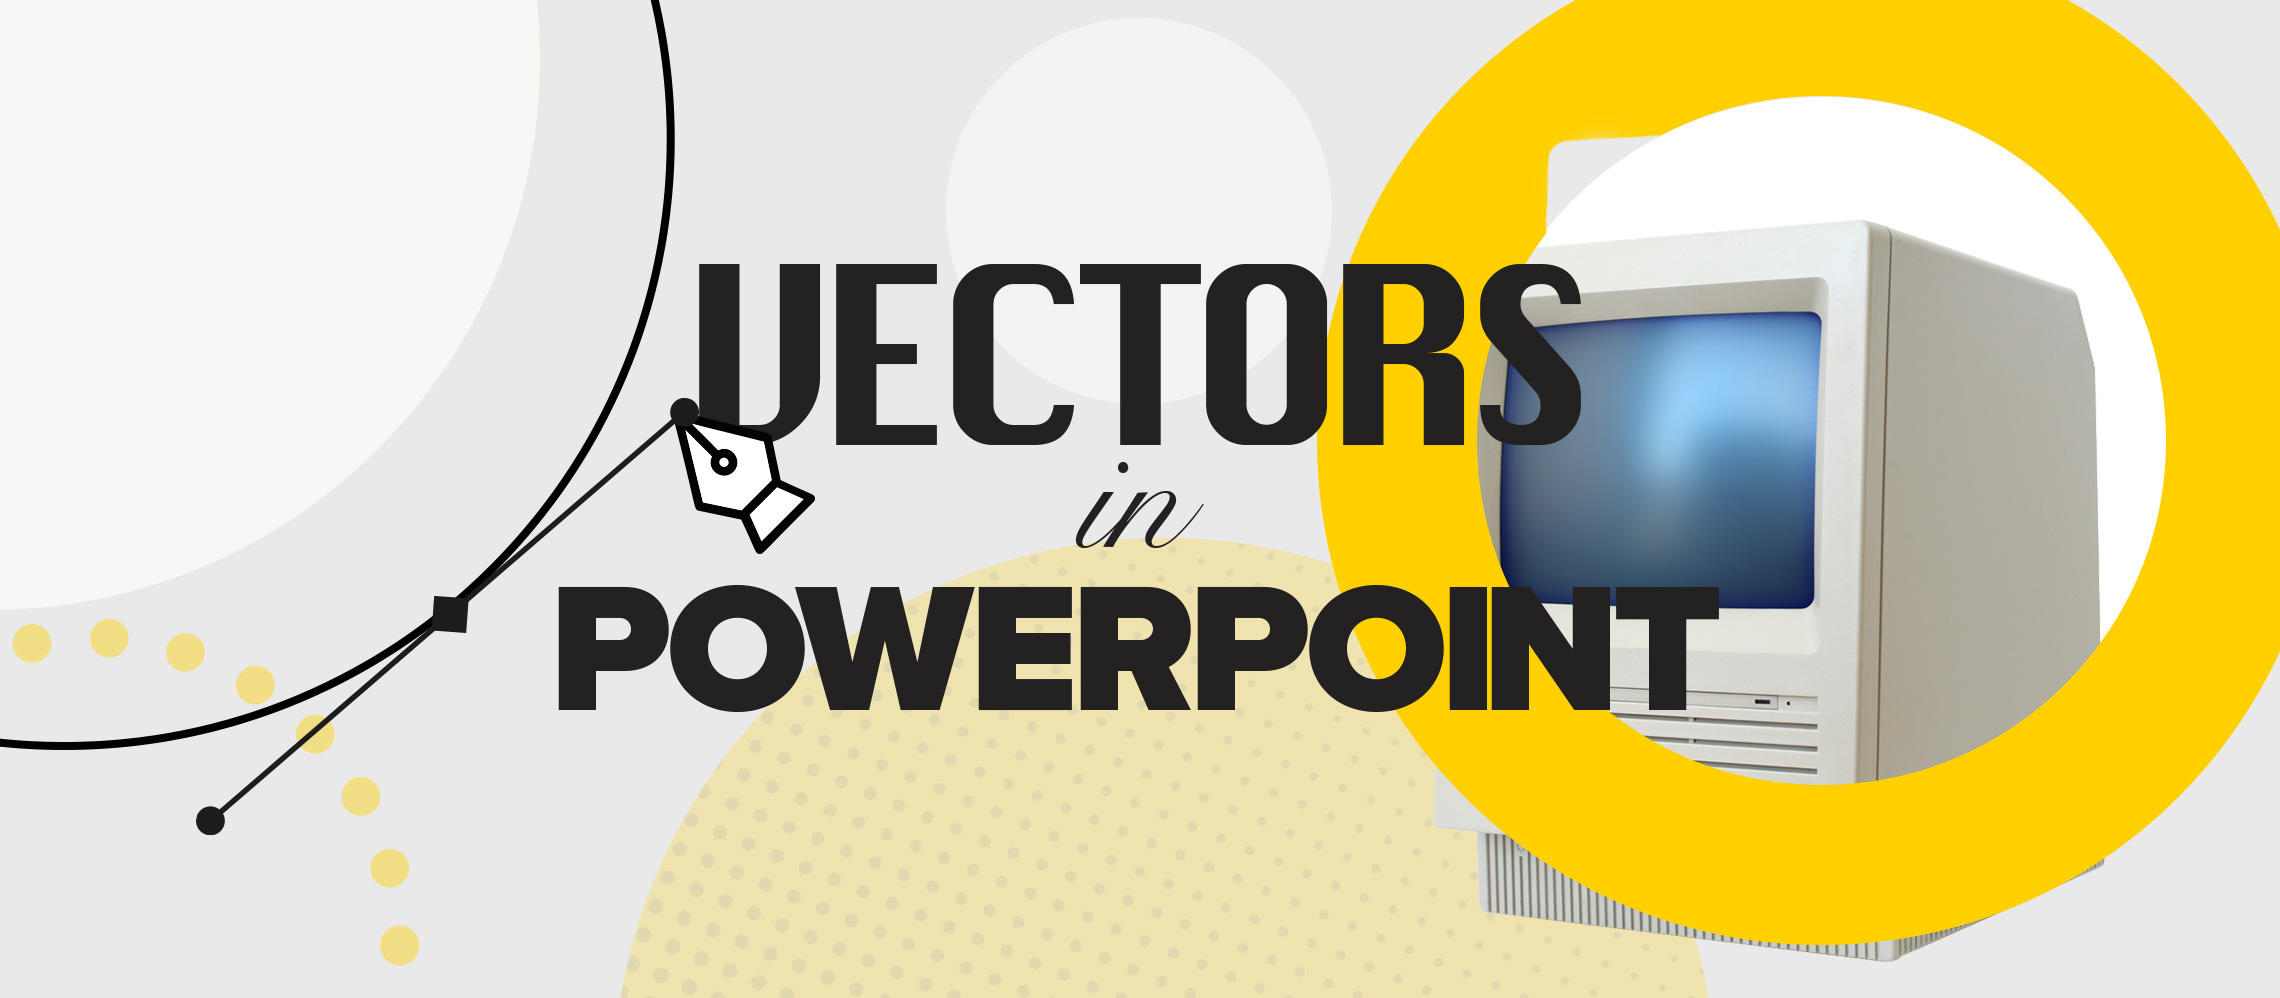 How To Use Vectors in PowerPoint | SVG, EMF & EPS Files